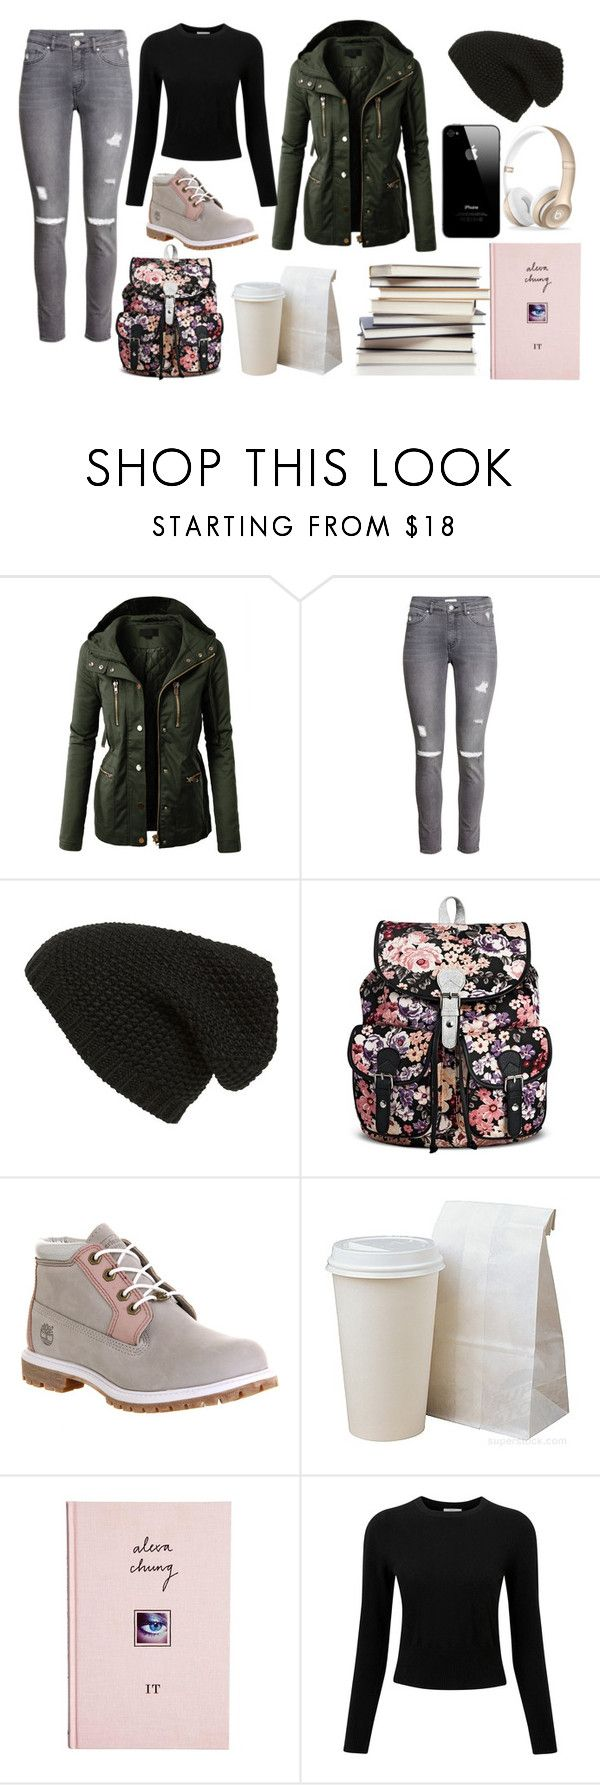 """""""That Awkward Girl AKA Me"""" by marsophie ❤ liked on Polyvore featuring LE3NO, H&M, Phase 3, Timberland, ASOS, Beats by Dr. Dre and Pure Collection"""